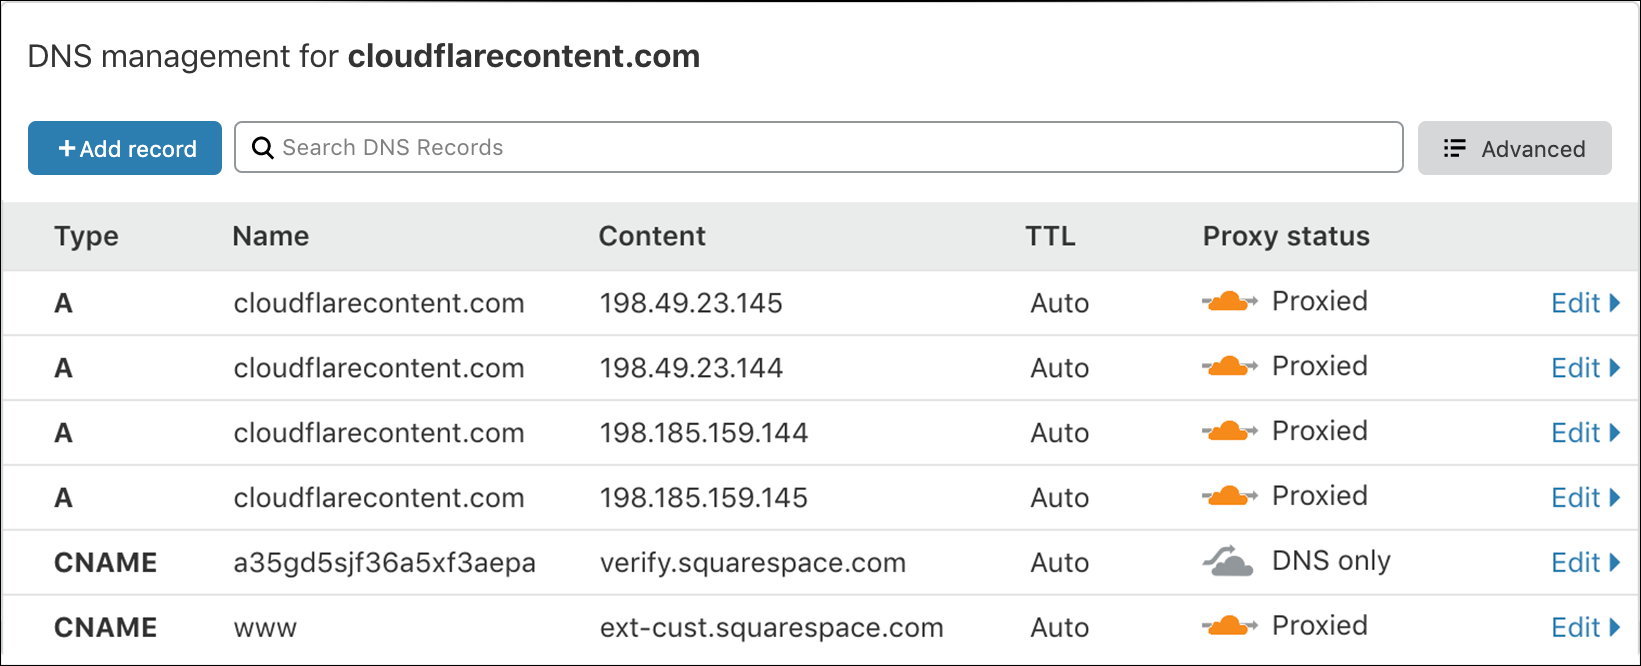 screenshot of the cloudflarecontent.com DNS records from Squarespace